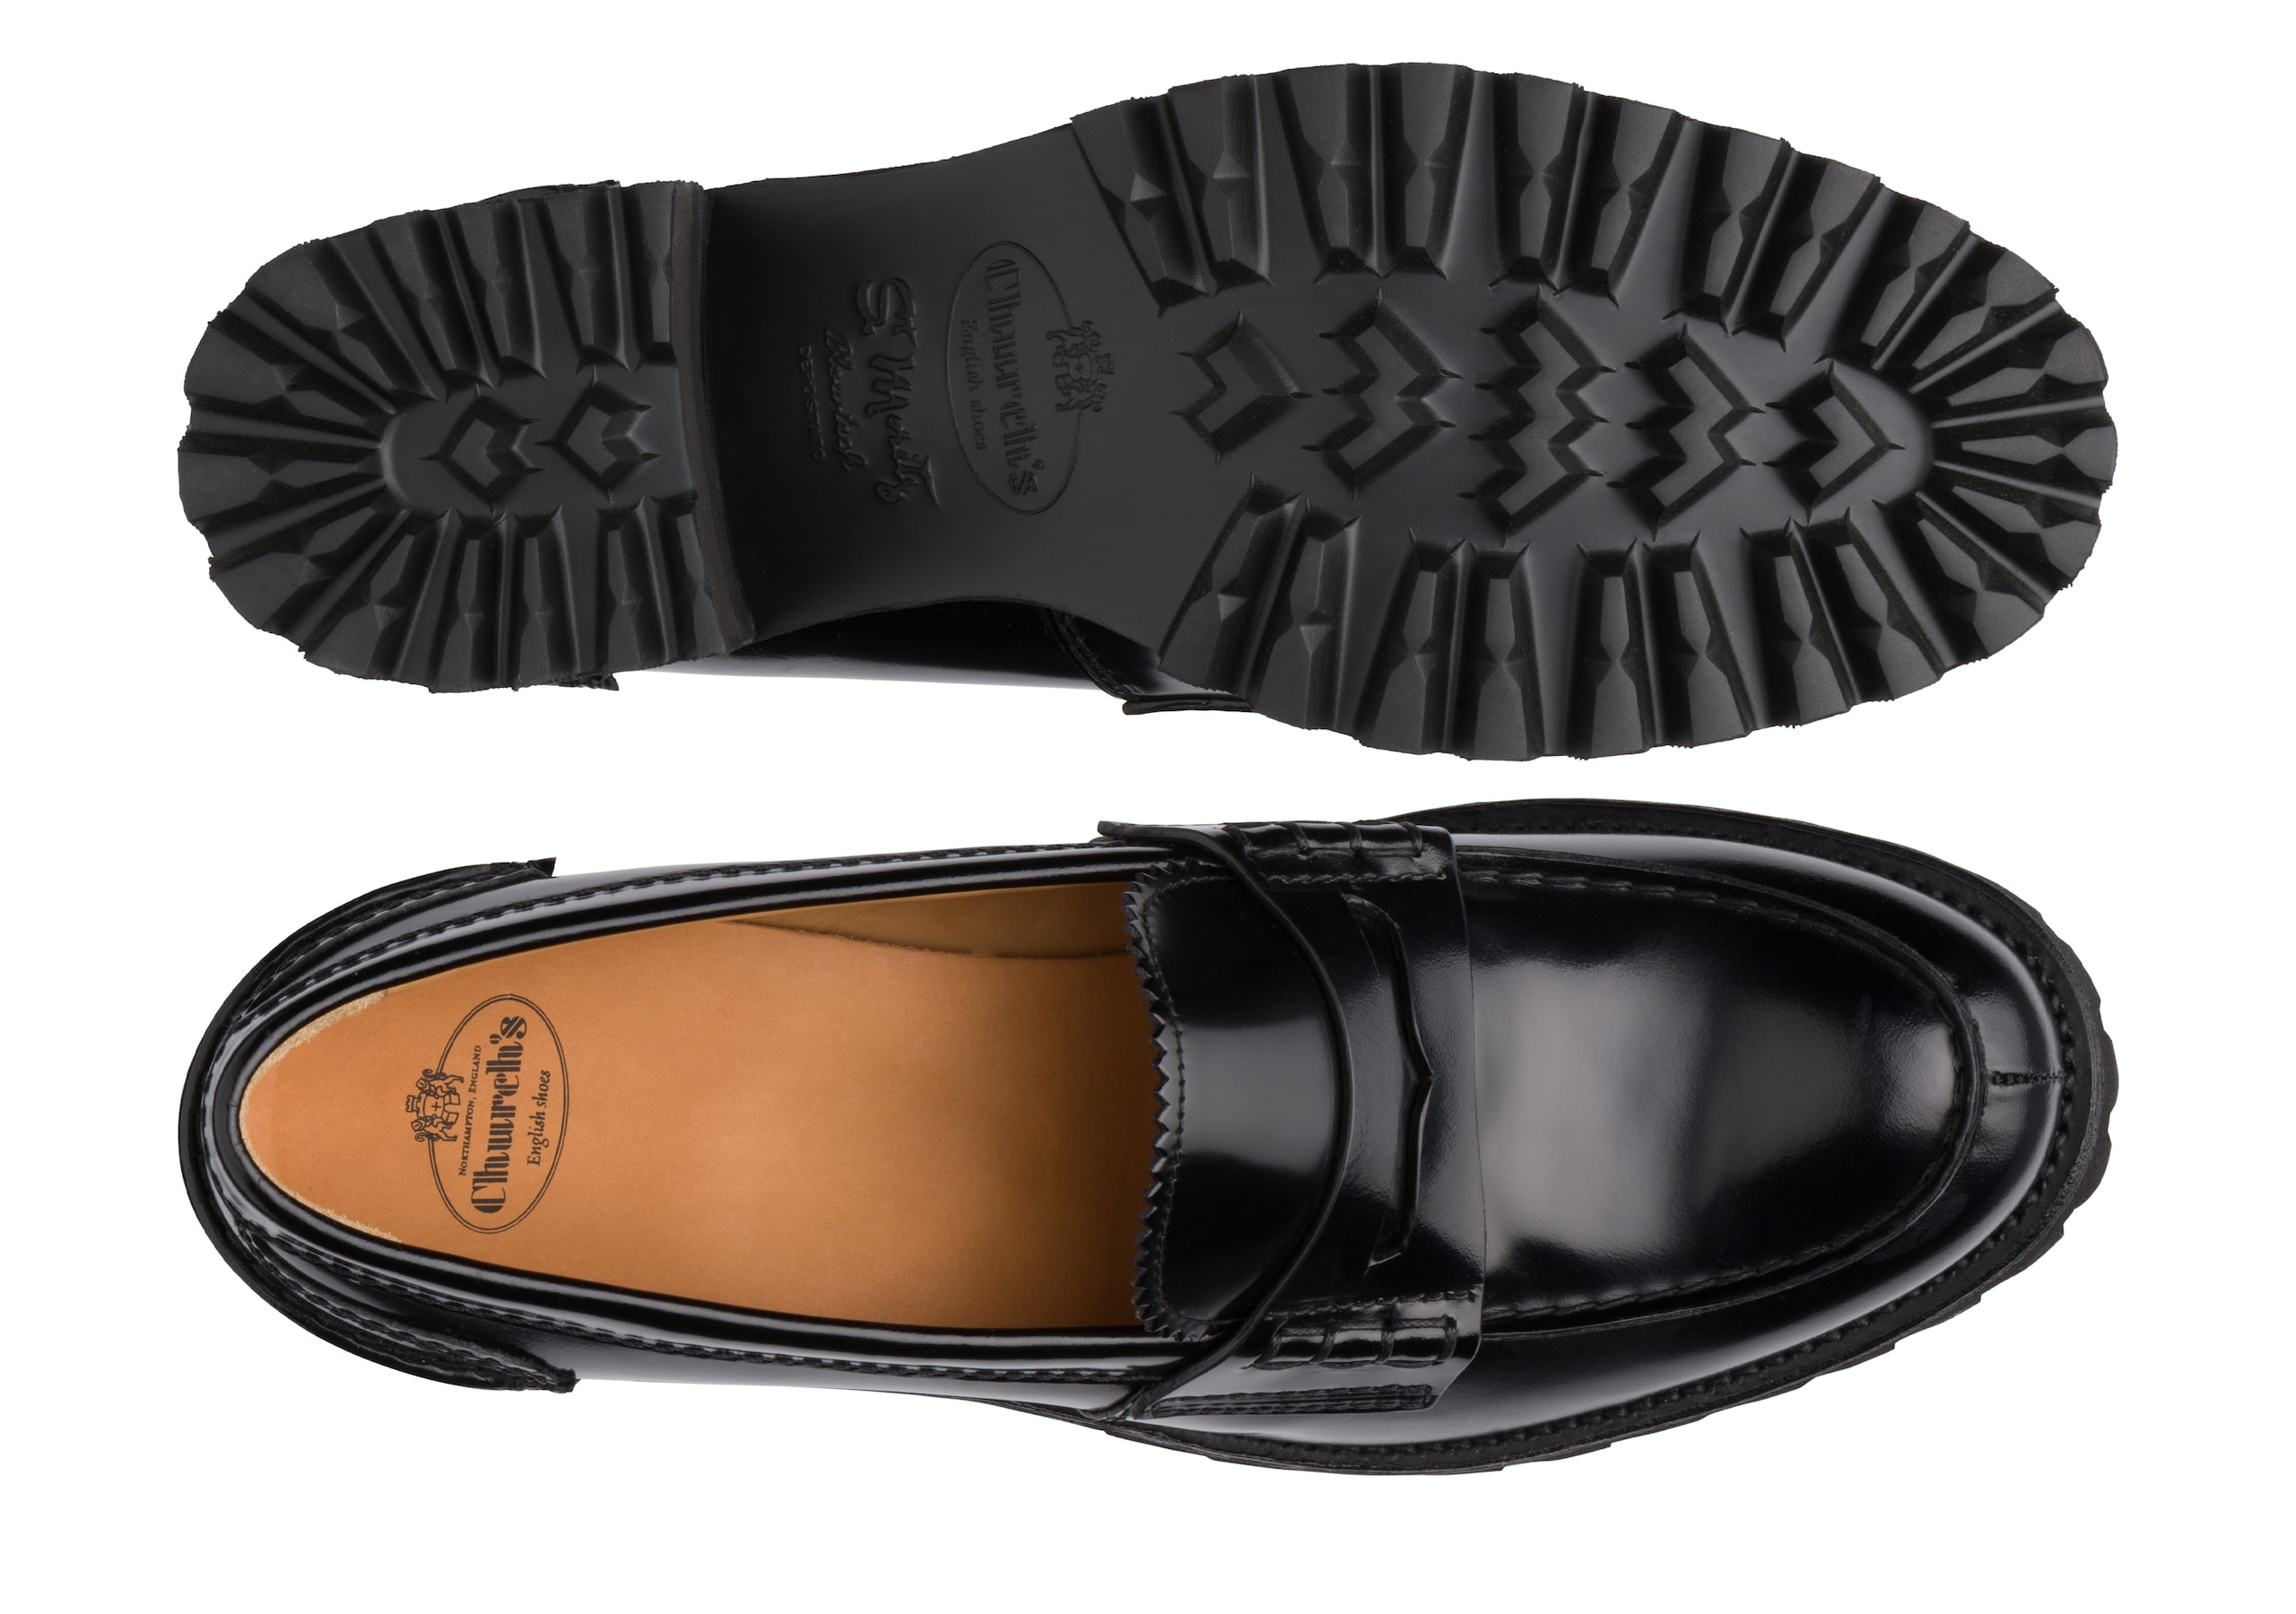 Pembrey 40t Church's Patent Leather Loafer Black